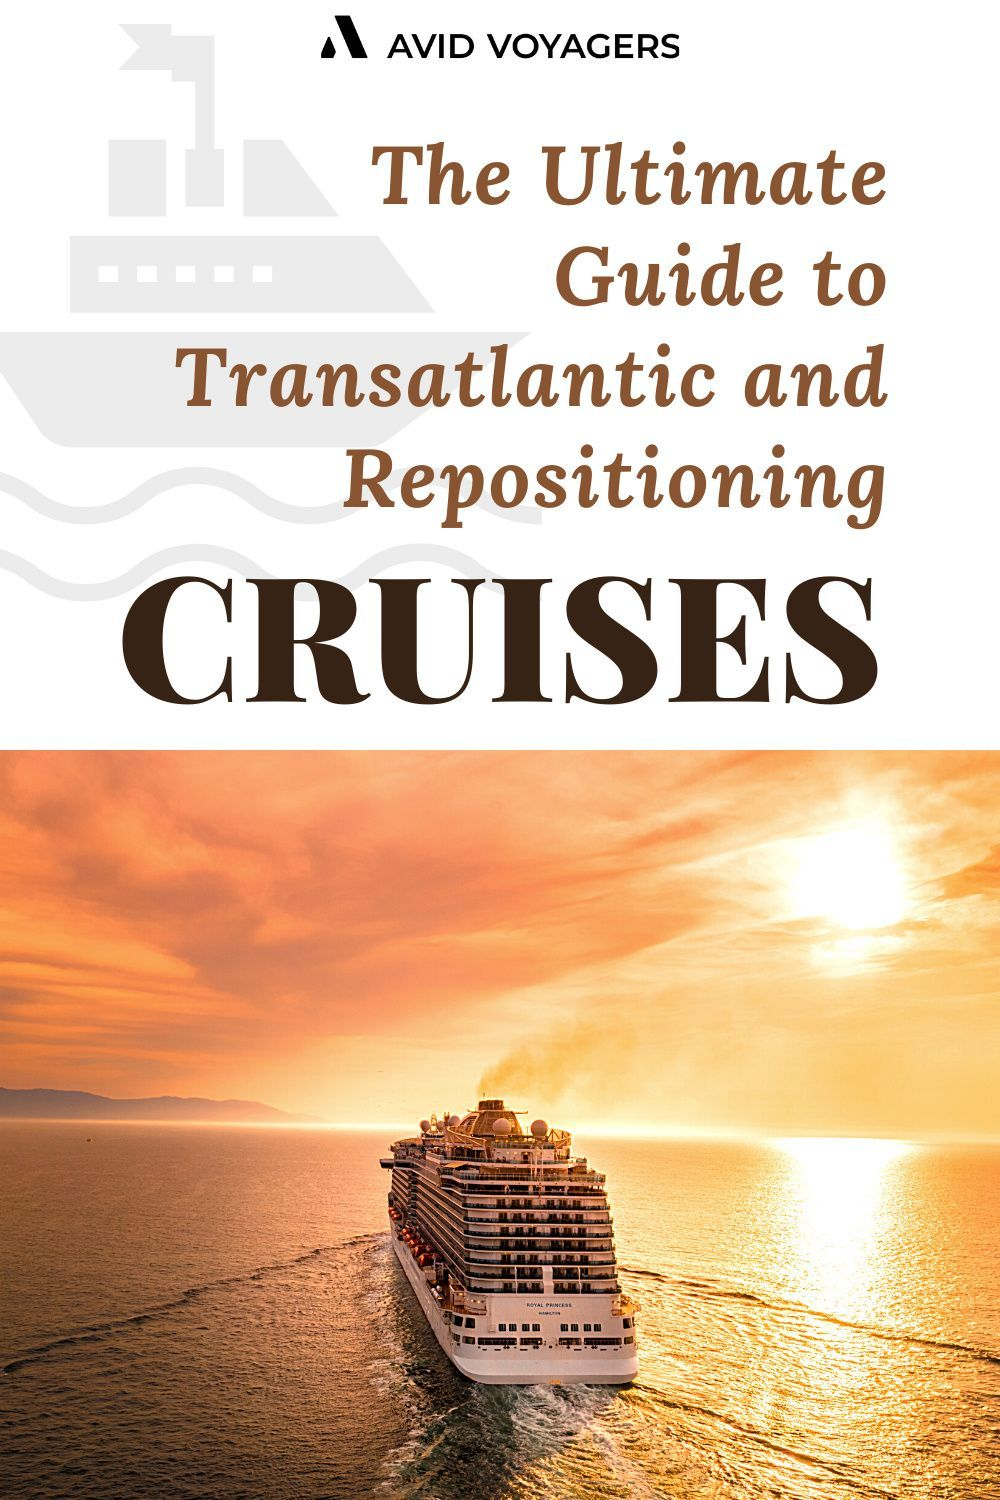 The Ultimate Guide To Transatlantic And Repositioning Cruises For Winter Repositioning Cruises Transatlantic Cruise Cruise